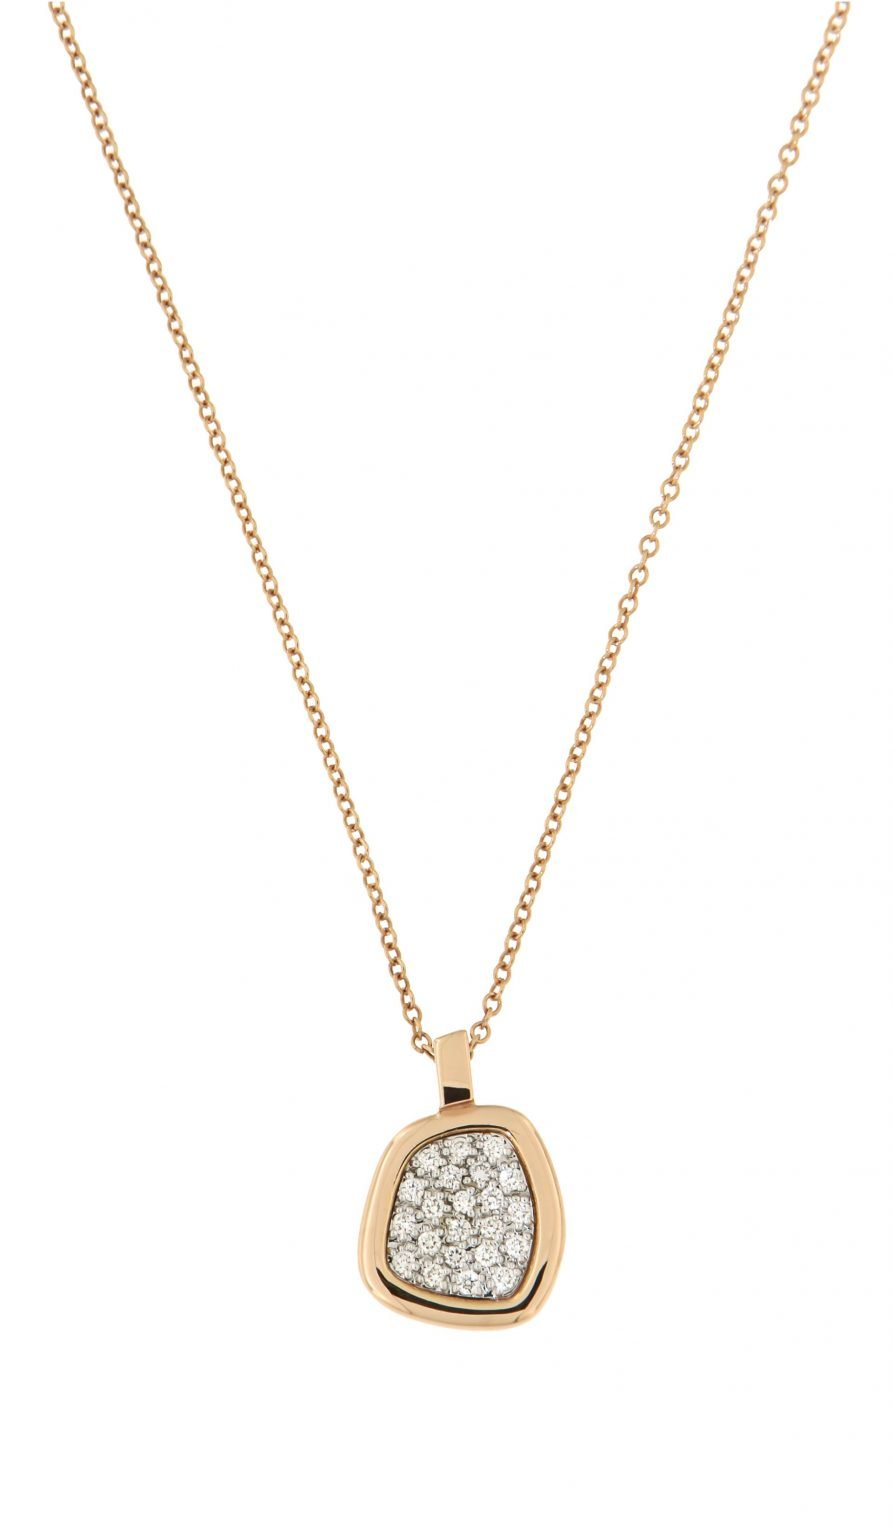 pink gold pendant with diamonds